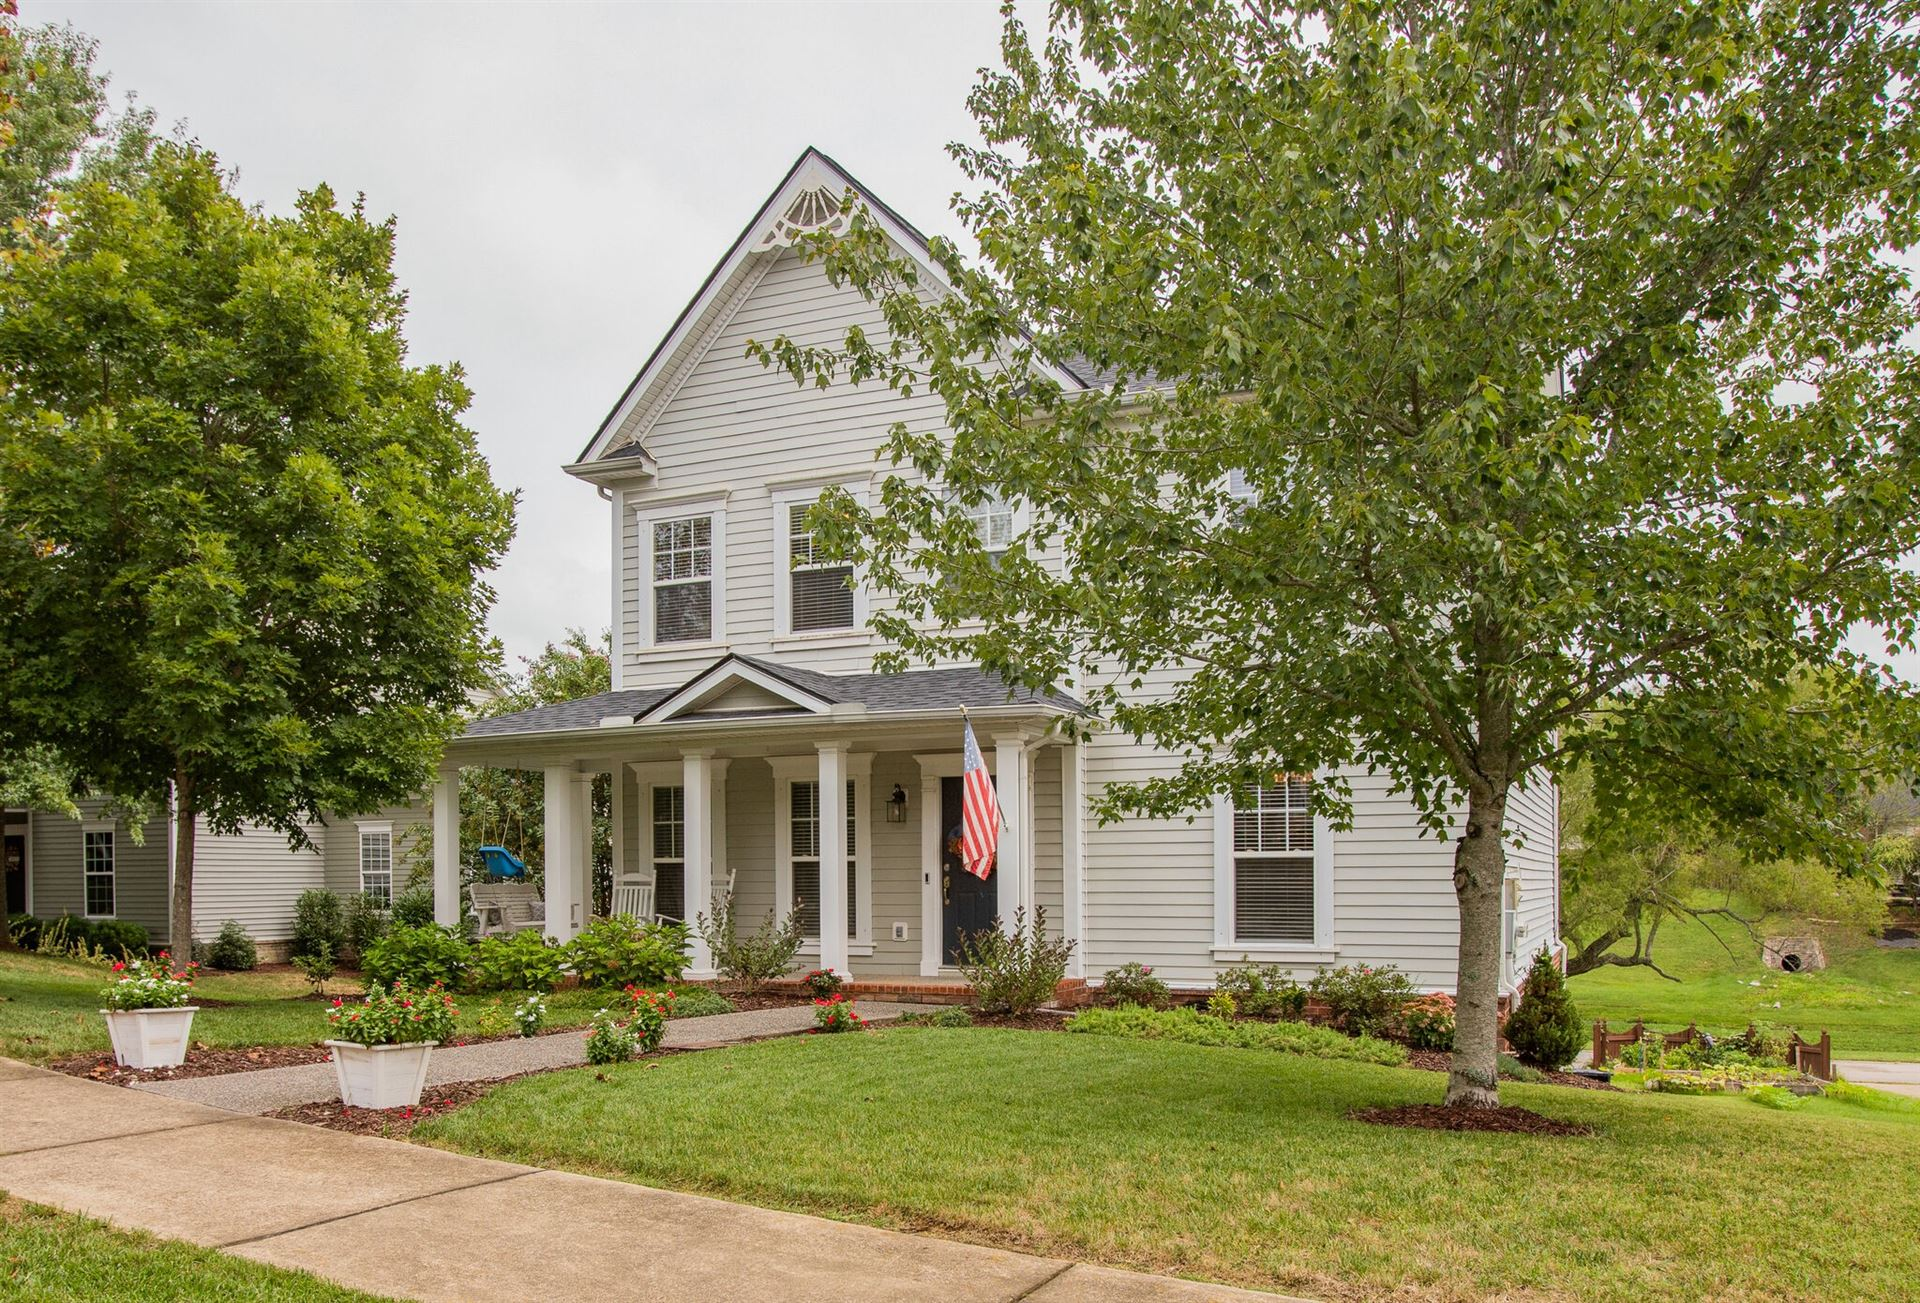 Photo of 1306 Pickwick Park Ct, Franklin, TN 37067 (MLS # 2189483)